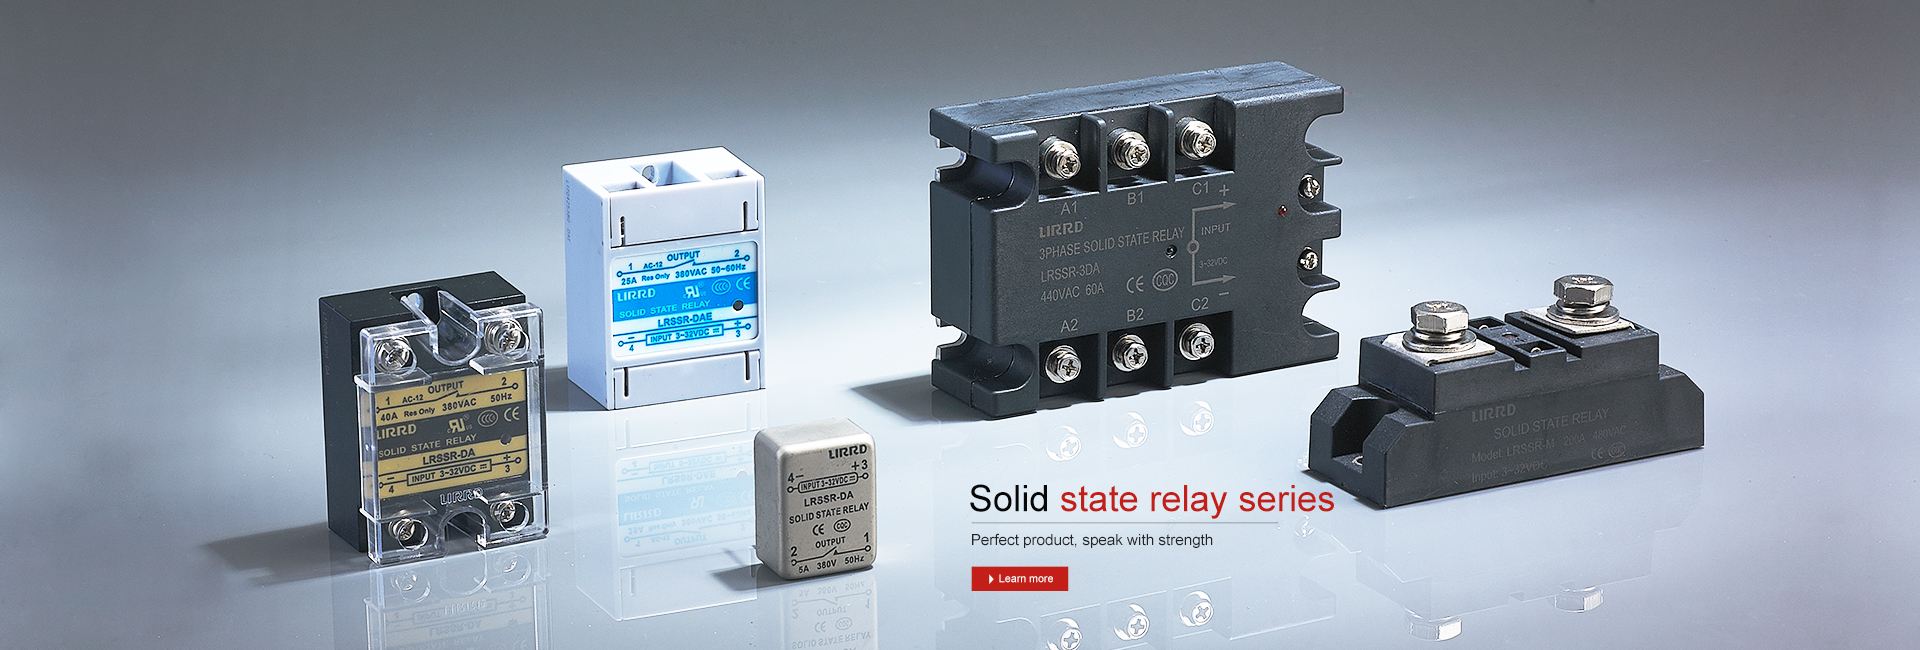 Zhejiang Lierde Relay Enterprise Coltd The Professional Solid State